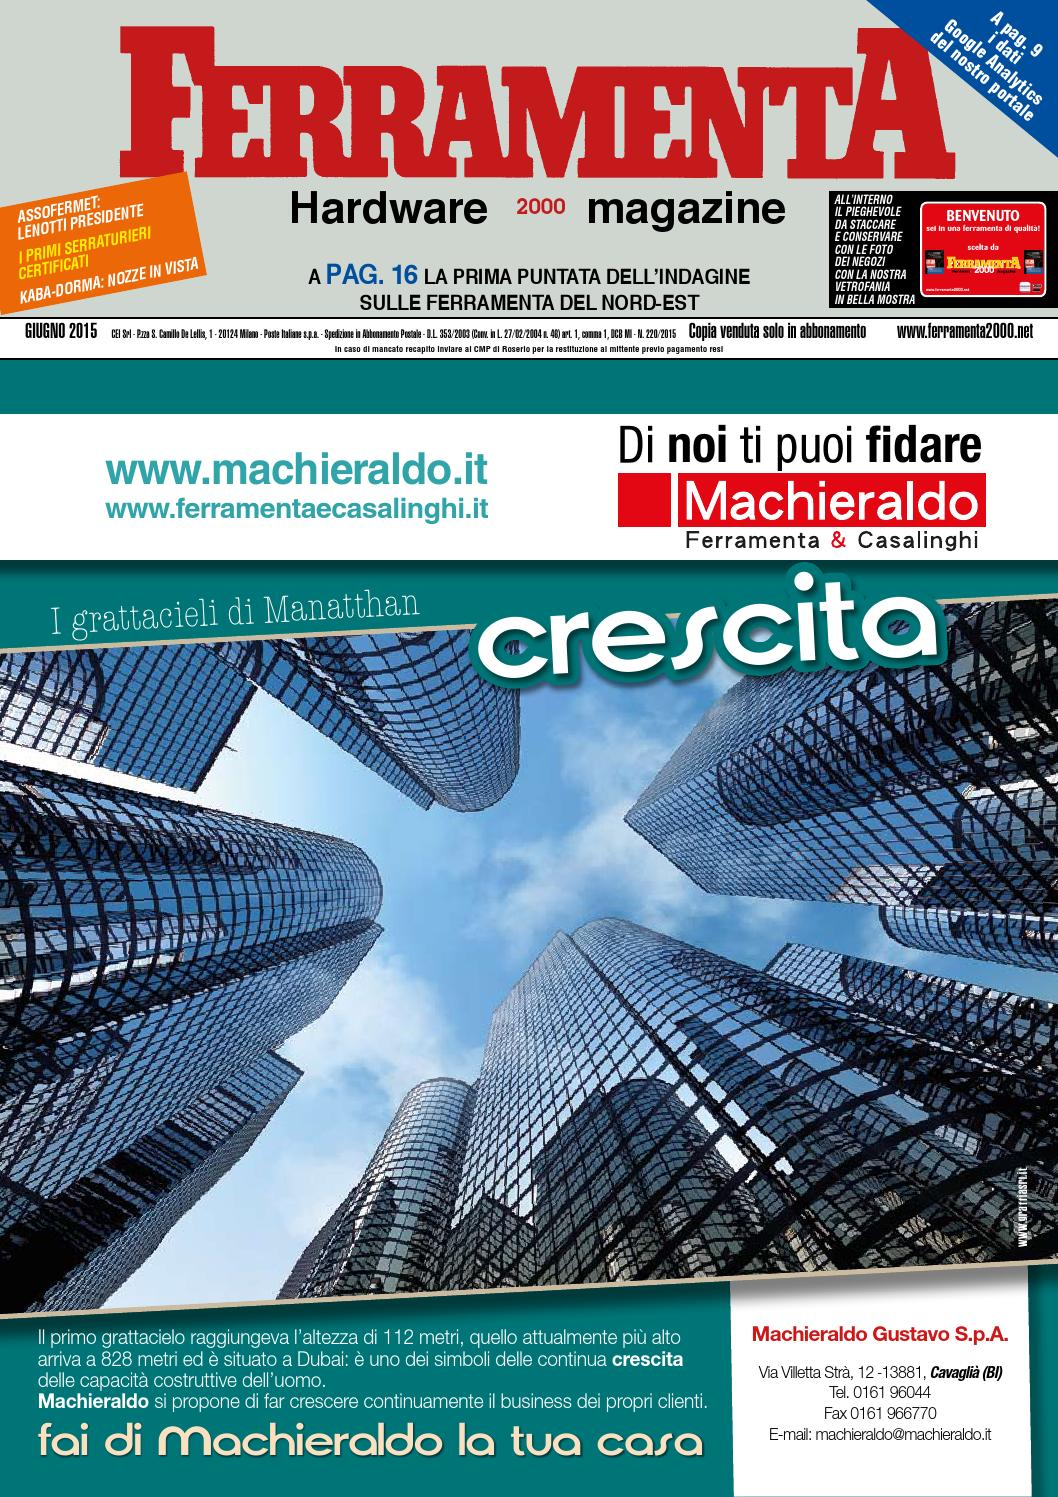 Ferramenta giugno 2015 by Compagnia Editoriale Italiana - issuu